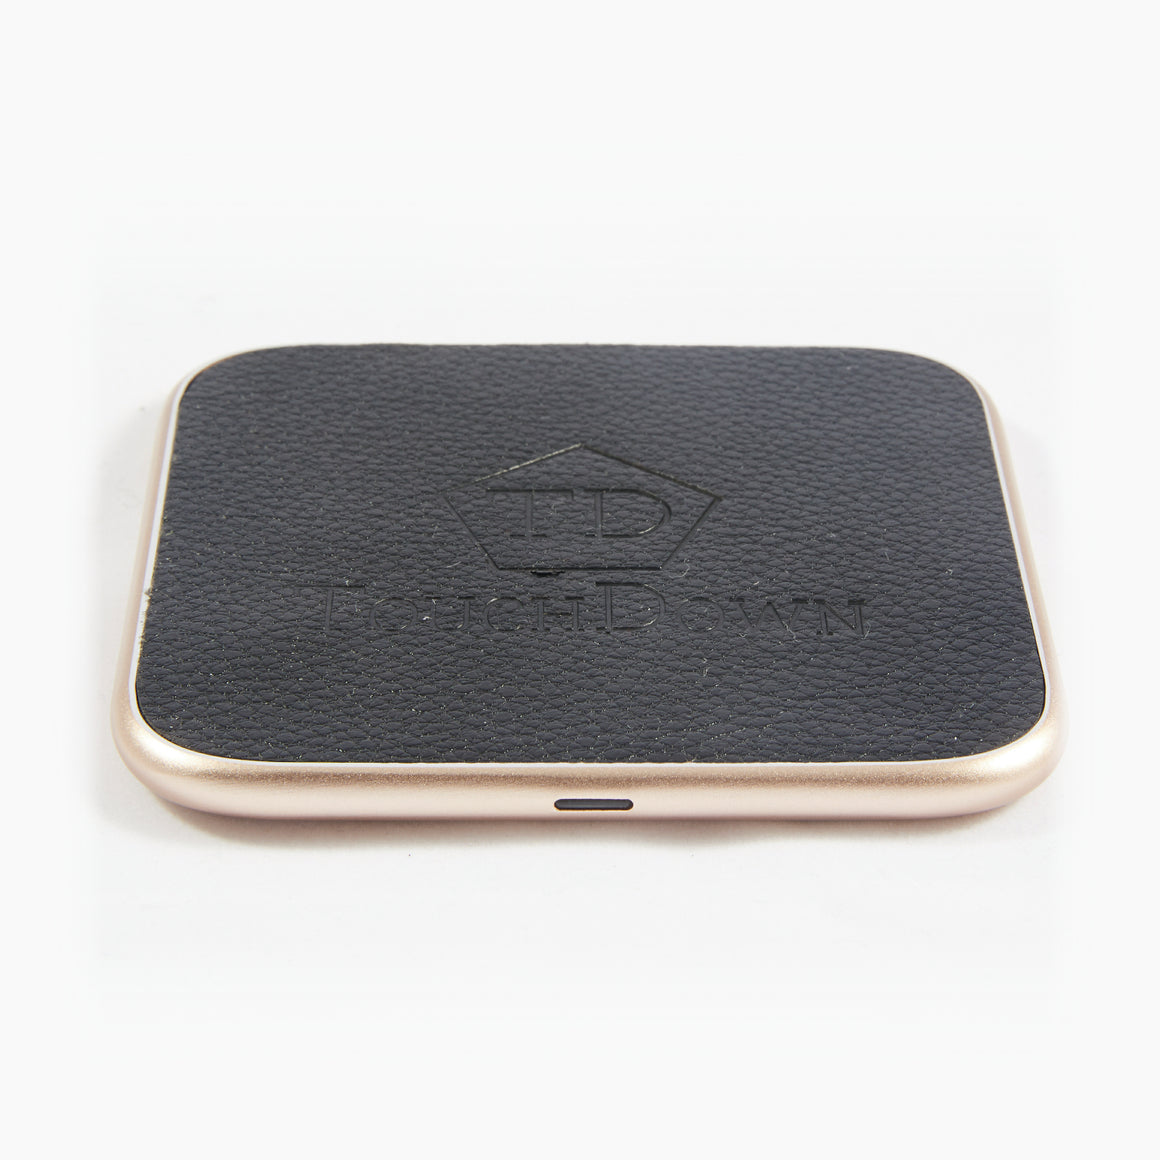 Leather Charging Pad - Business Edition - Black-Charging Pad-TouchDown Charging-Black-TouchDown Charging